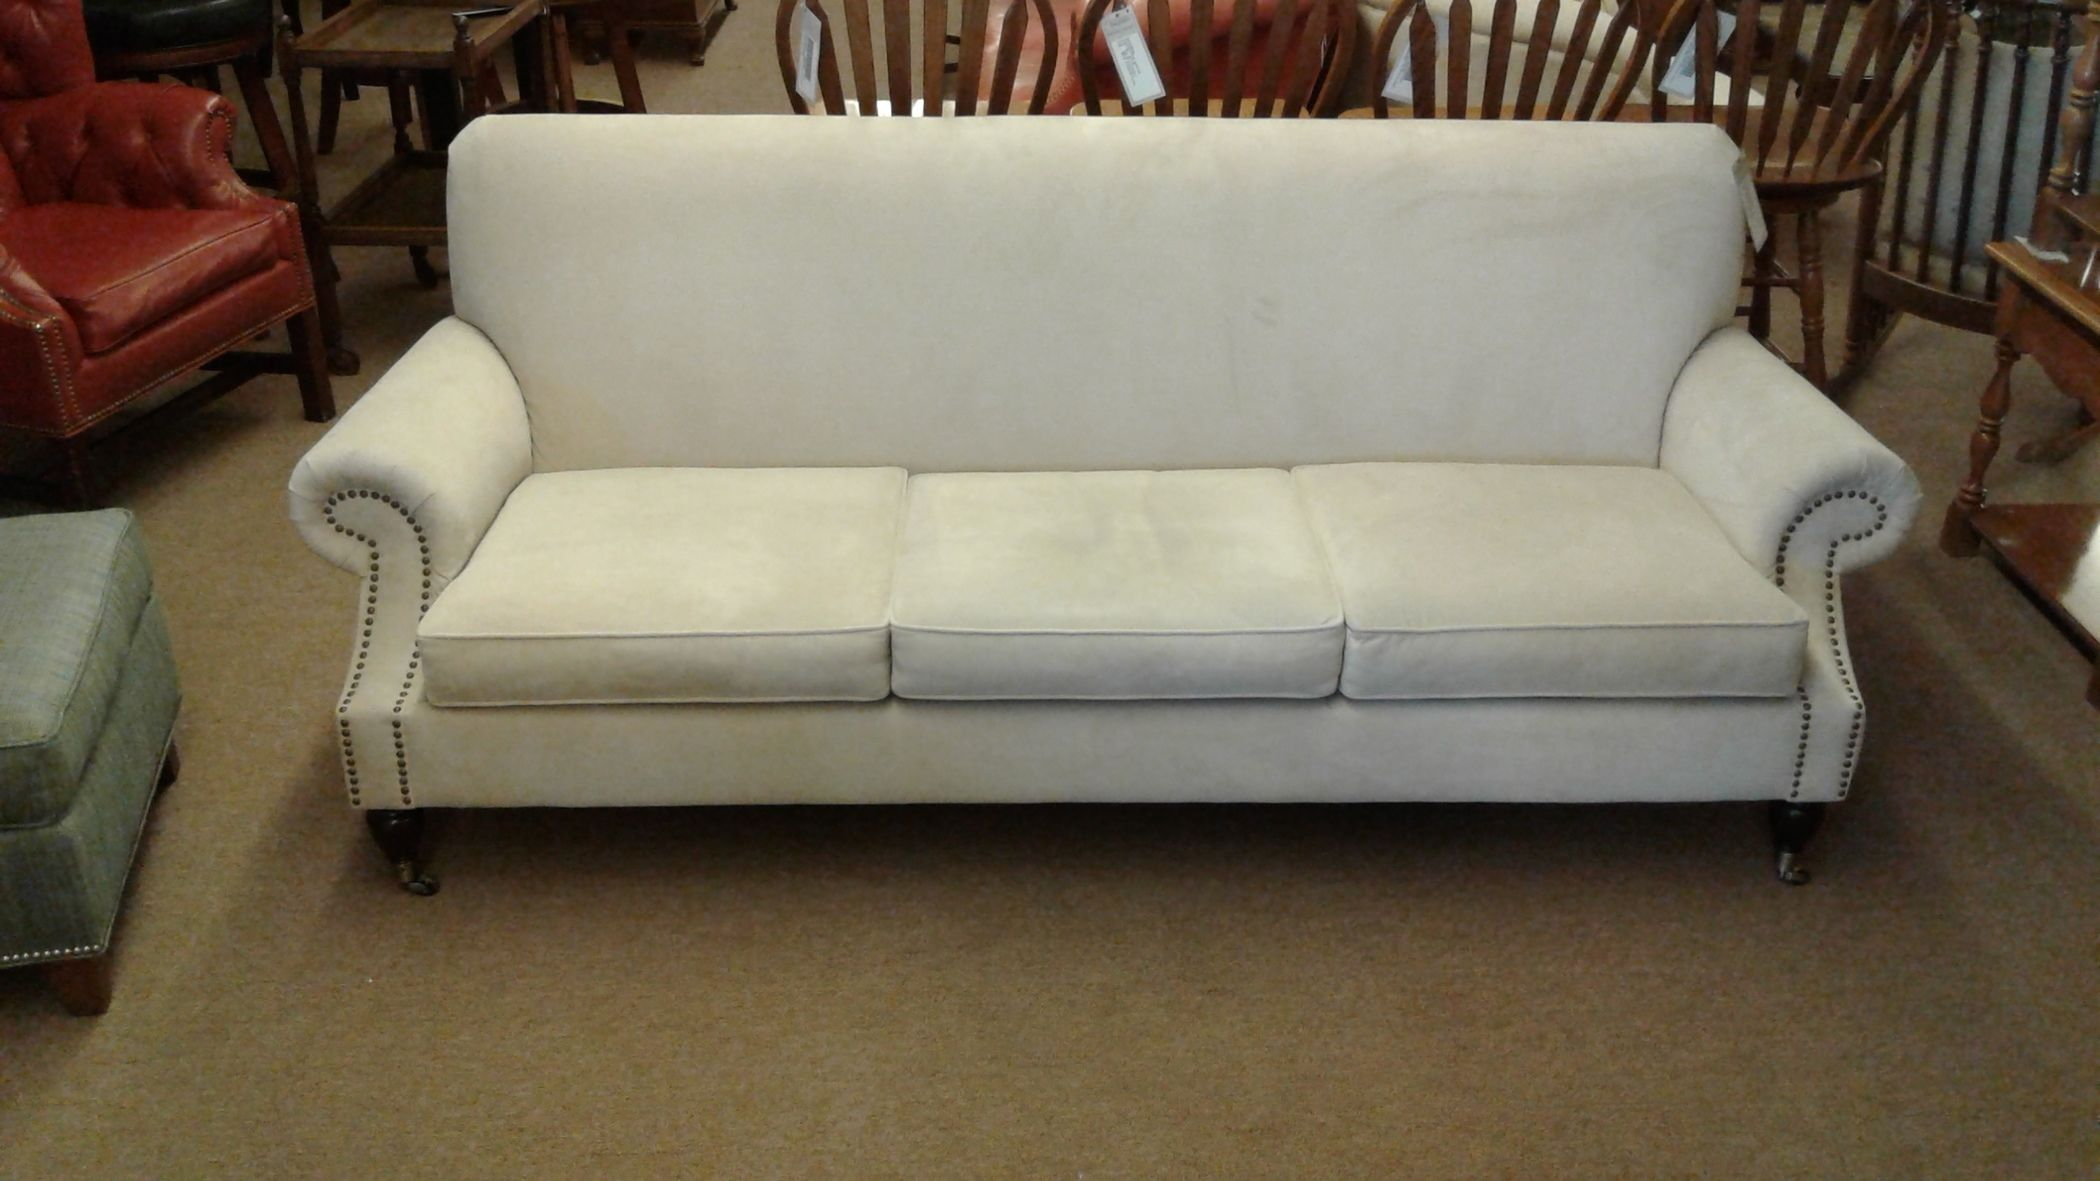 POTTERY BARN SOFA Delmarva Furniture Consignment : large20170217101615 from www.delmarvaconsignment.com size 2100 x 1181 jpeg 209kB